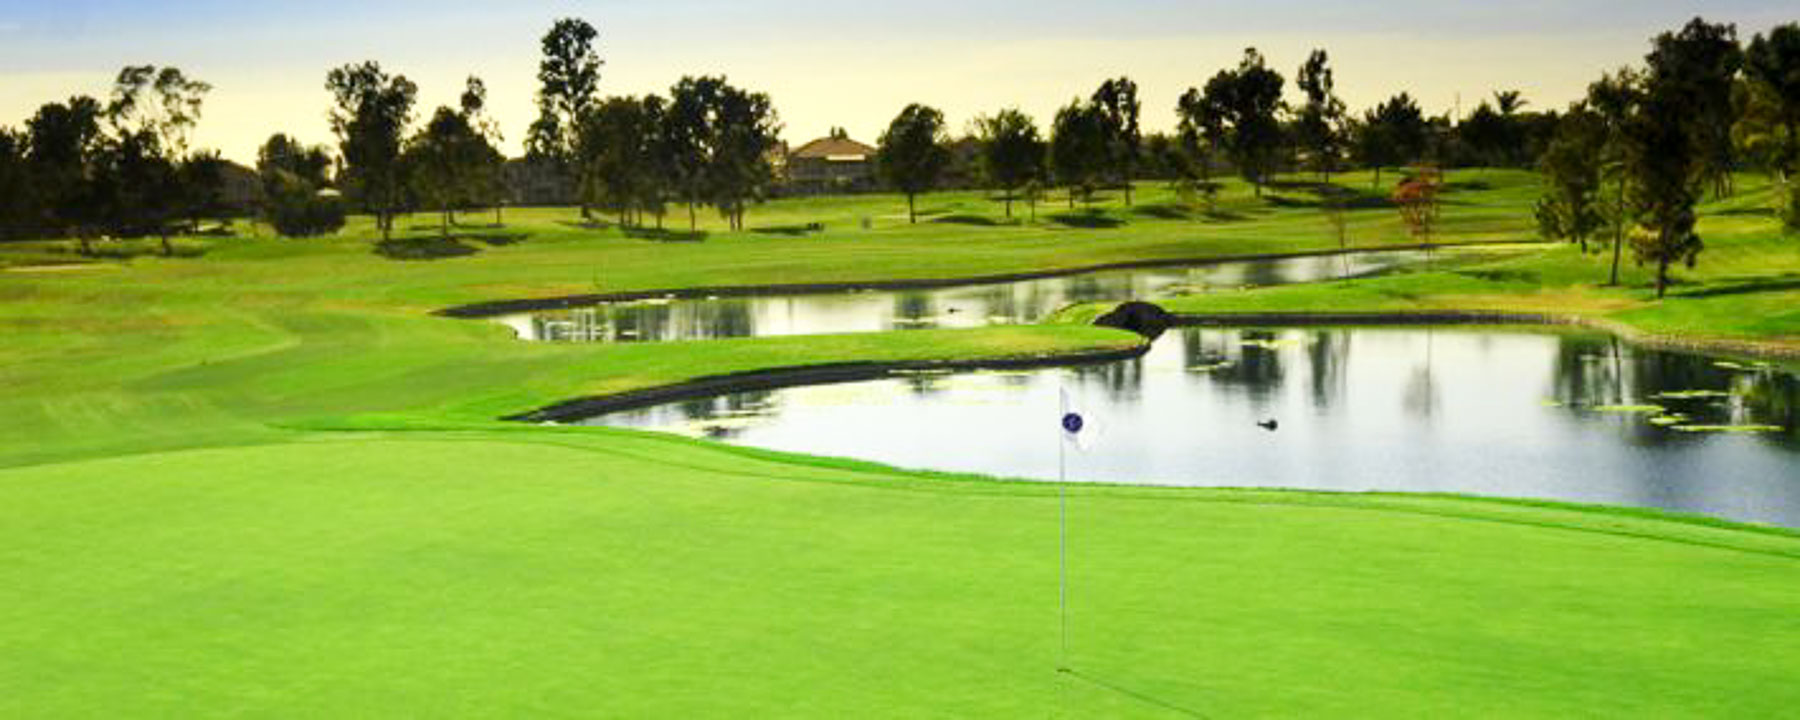 Golf Share For Sale At Alta Vista Golf And Country Club